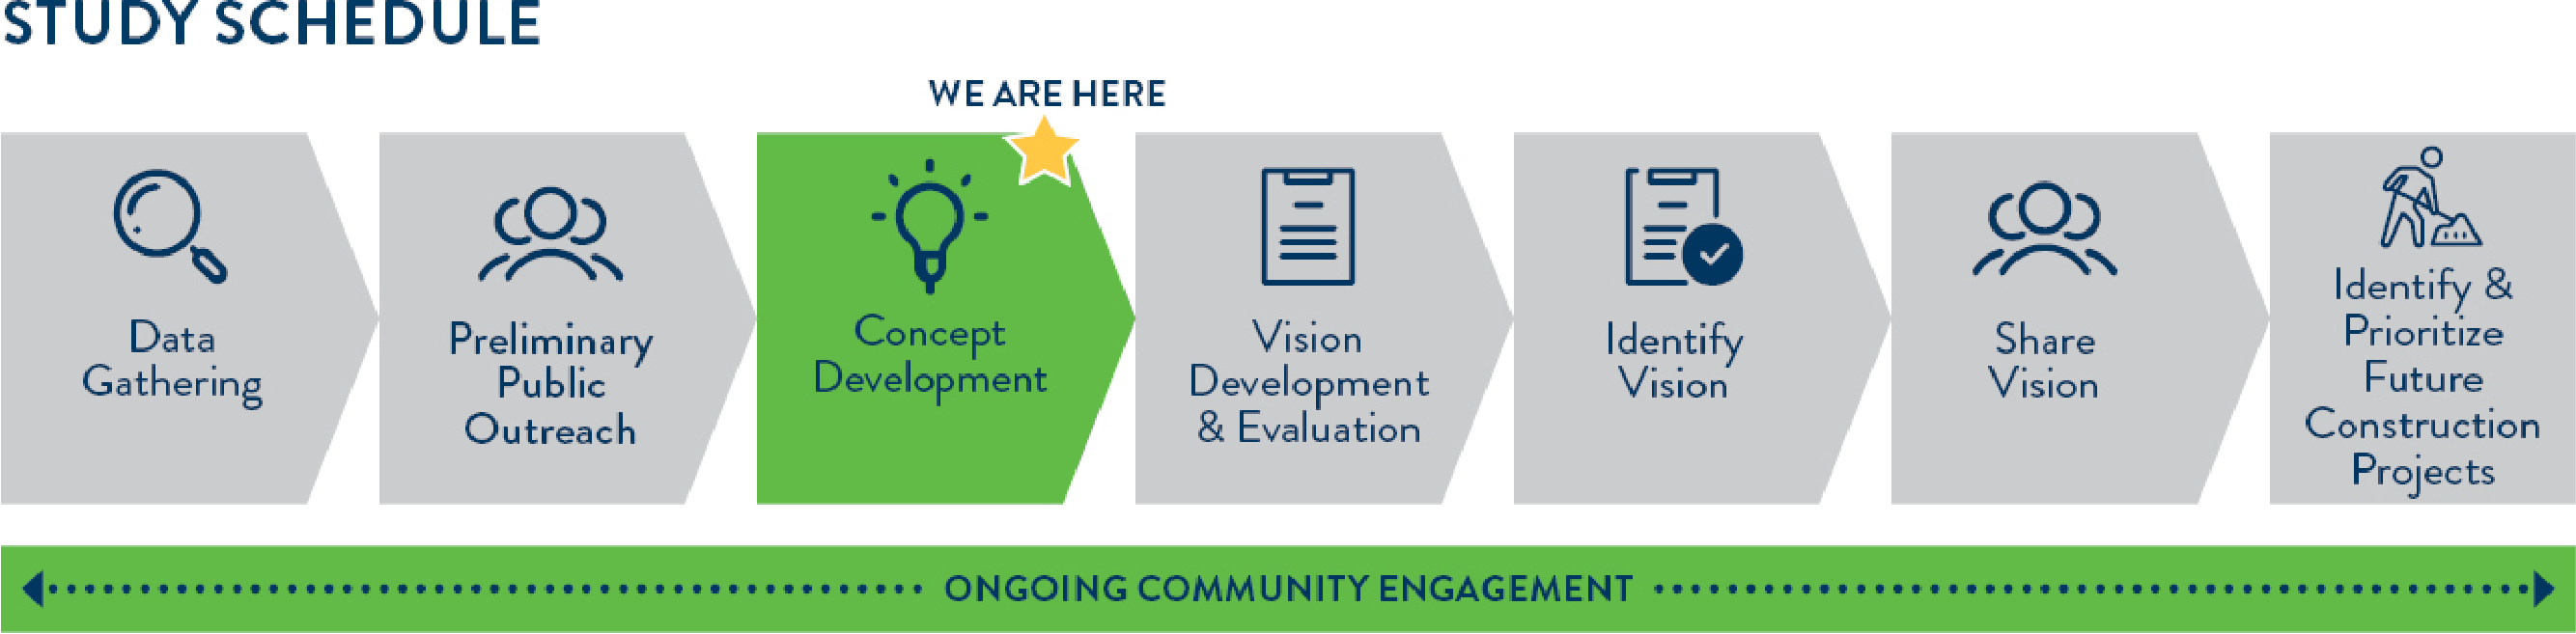 This study is in the concept development phase. The next phases are vision development and evaluation; identifying the vision; sharing the vision; and identifying and prioritizing future construction projects. Throughout the study, the study team will be engaging the community for input and feedback.